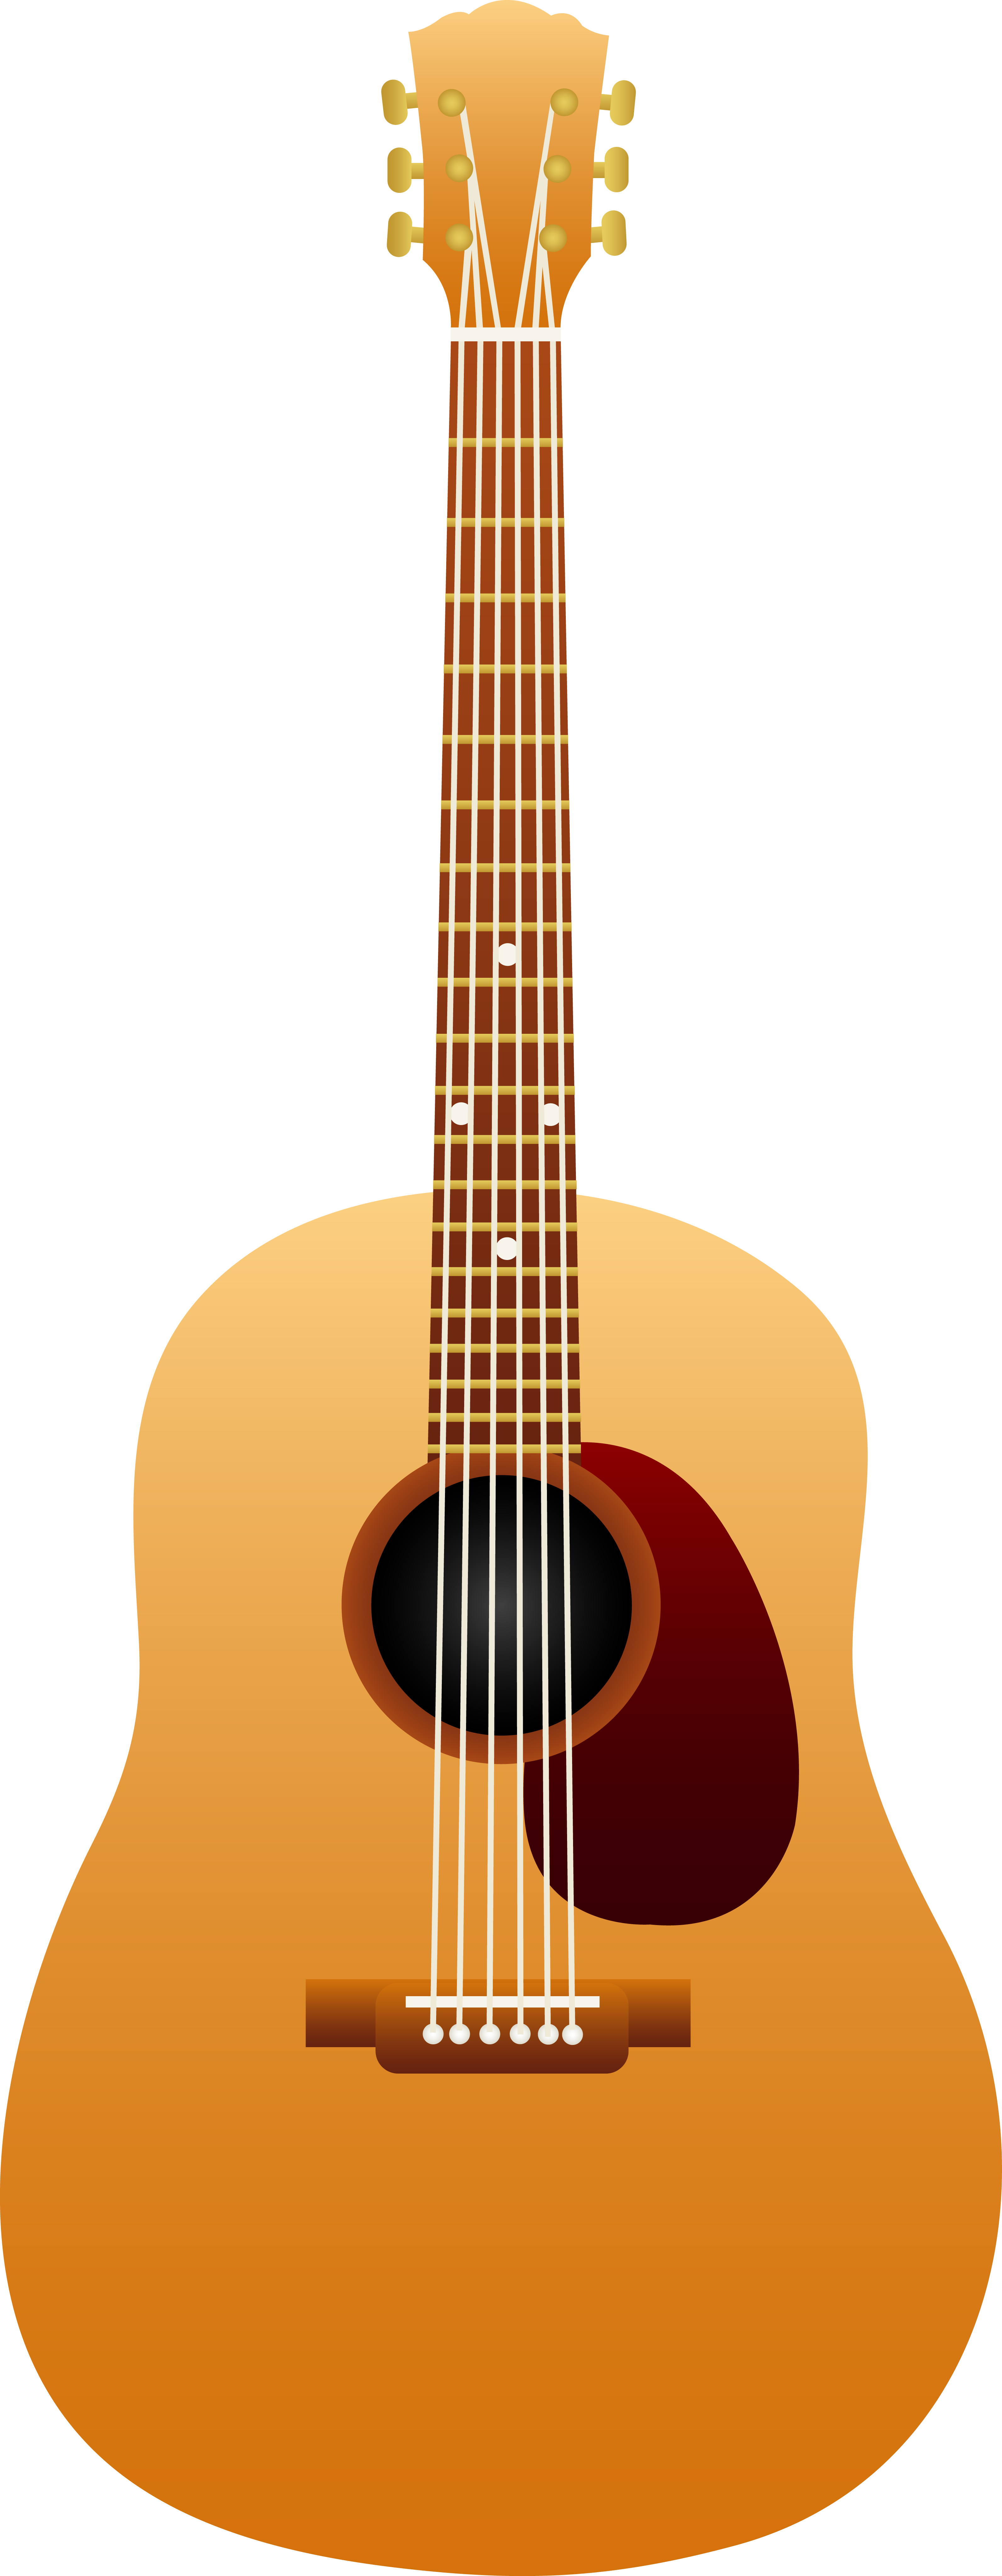 Acoustic clipart classic guitar. Classical wooden free clip